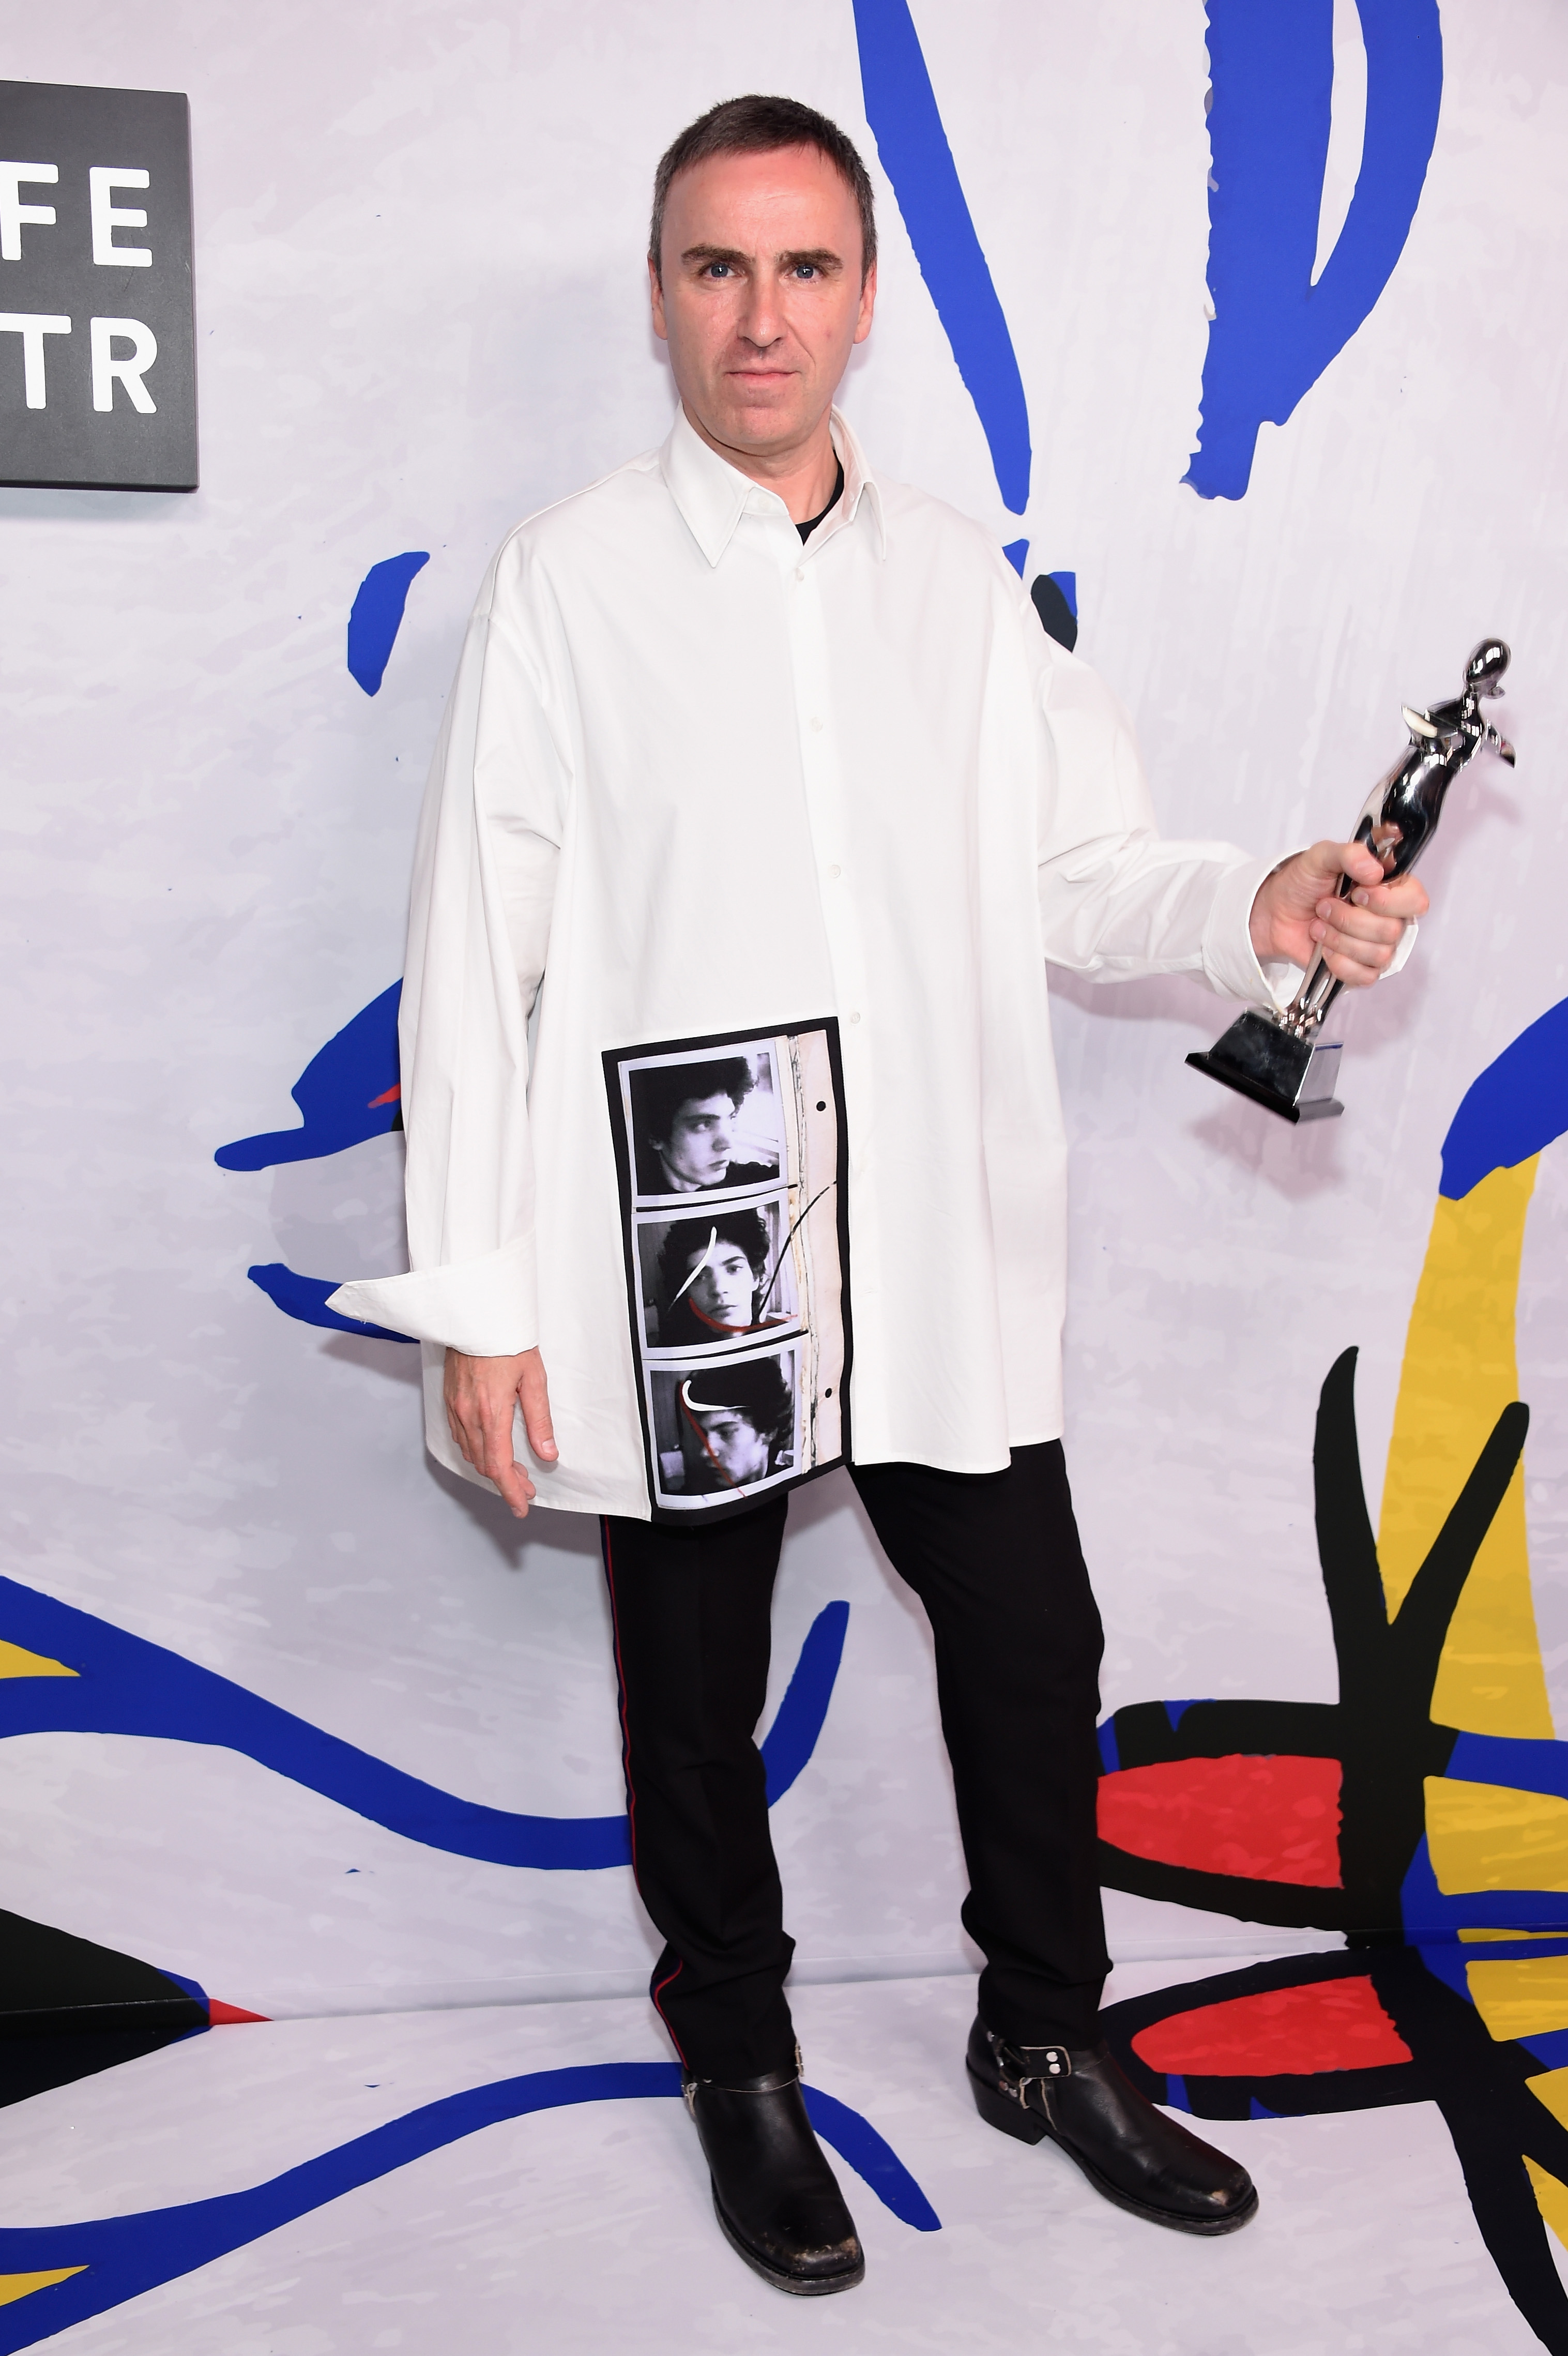 NEW YORK, NY - JUNE 05:  Designer Raf Simons for Calvin Klein poses with Womenswear Designer of the Year award on the Winners Walk during 2017 CFDA Fashion Awards at Hammerstein Ballroom on June 5, 2017 in New York City.  (Photo by Dimitrios Kambouris/Getty Images)